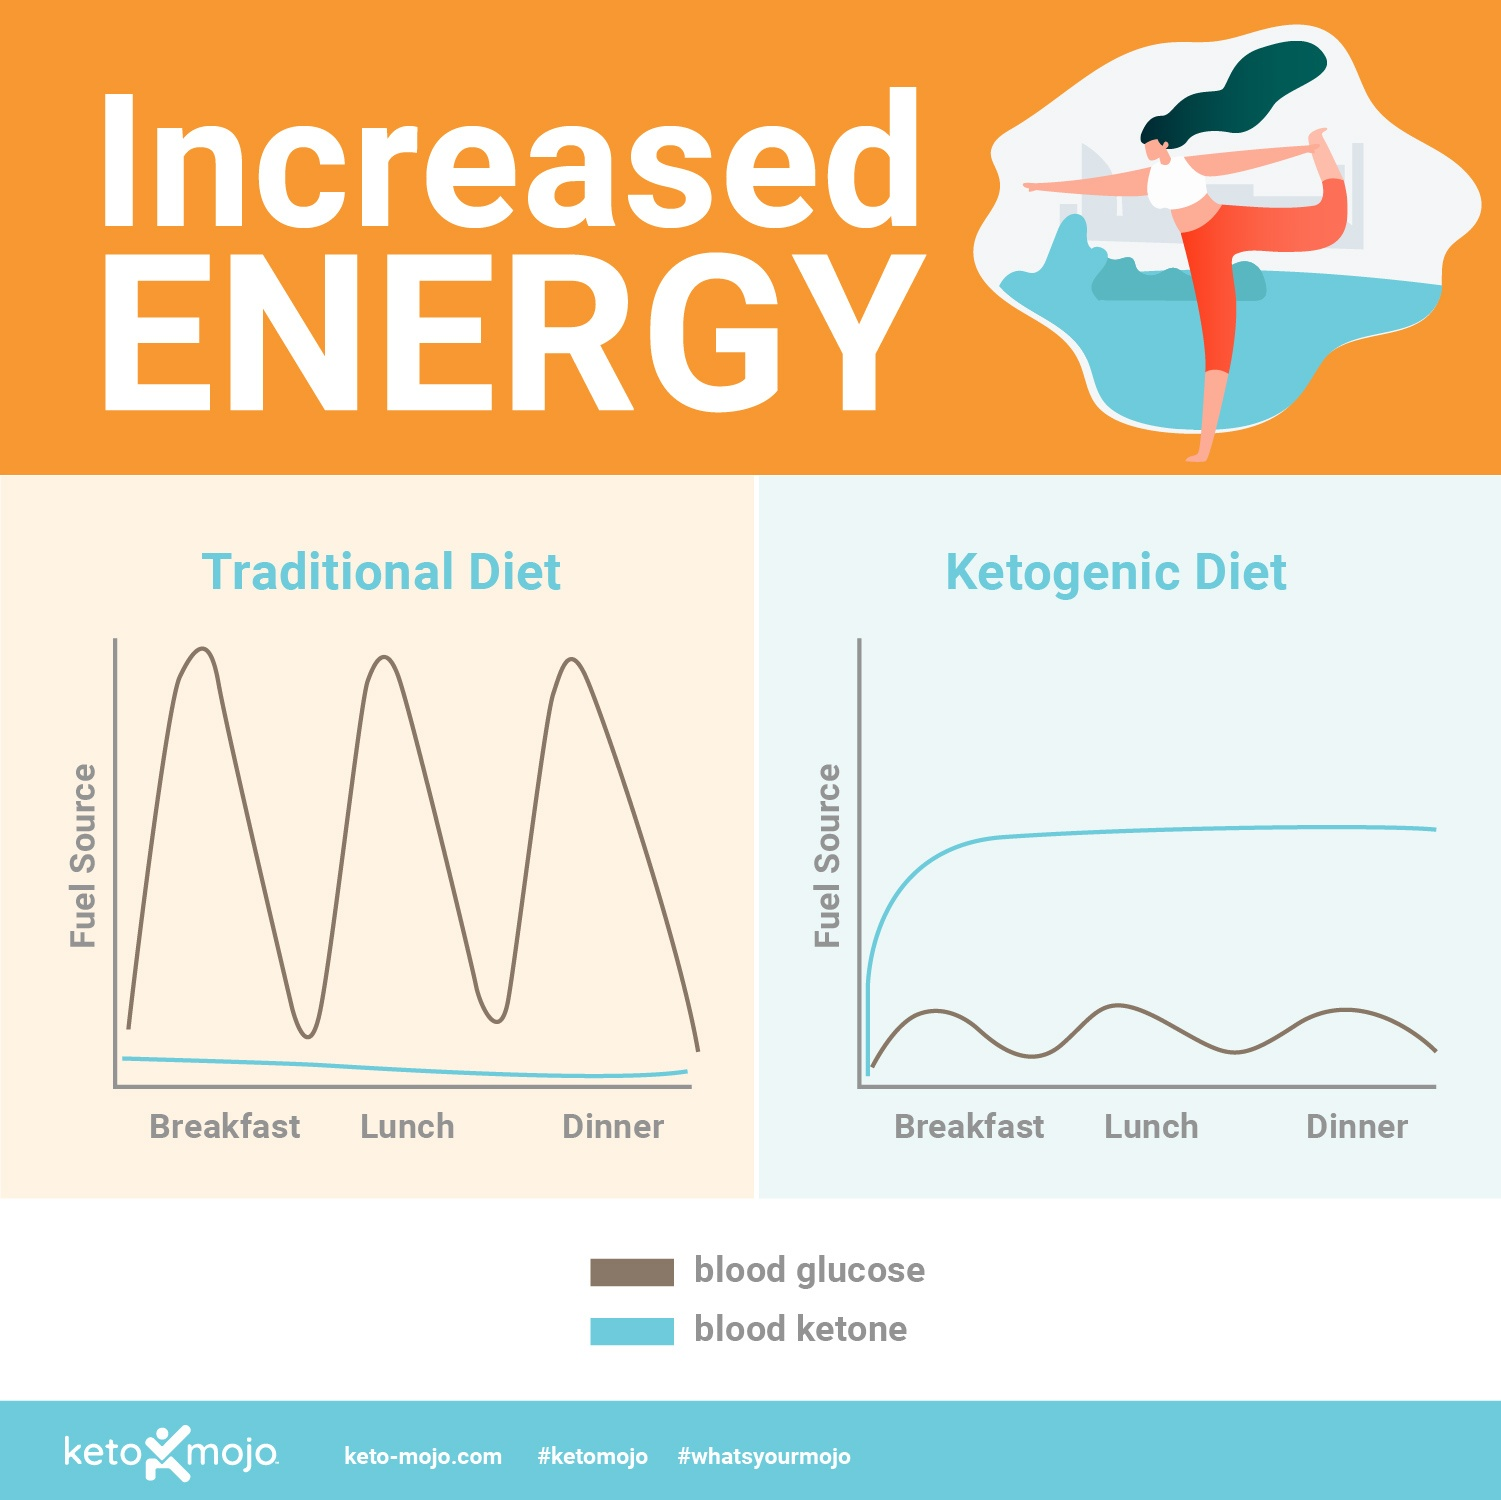 Keto-Mojo: Increased energy on ketogenic diet